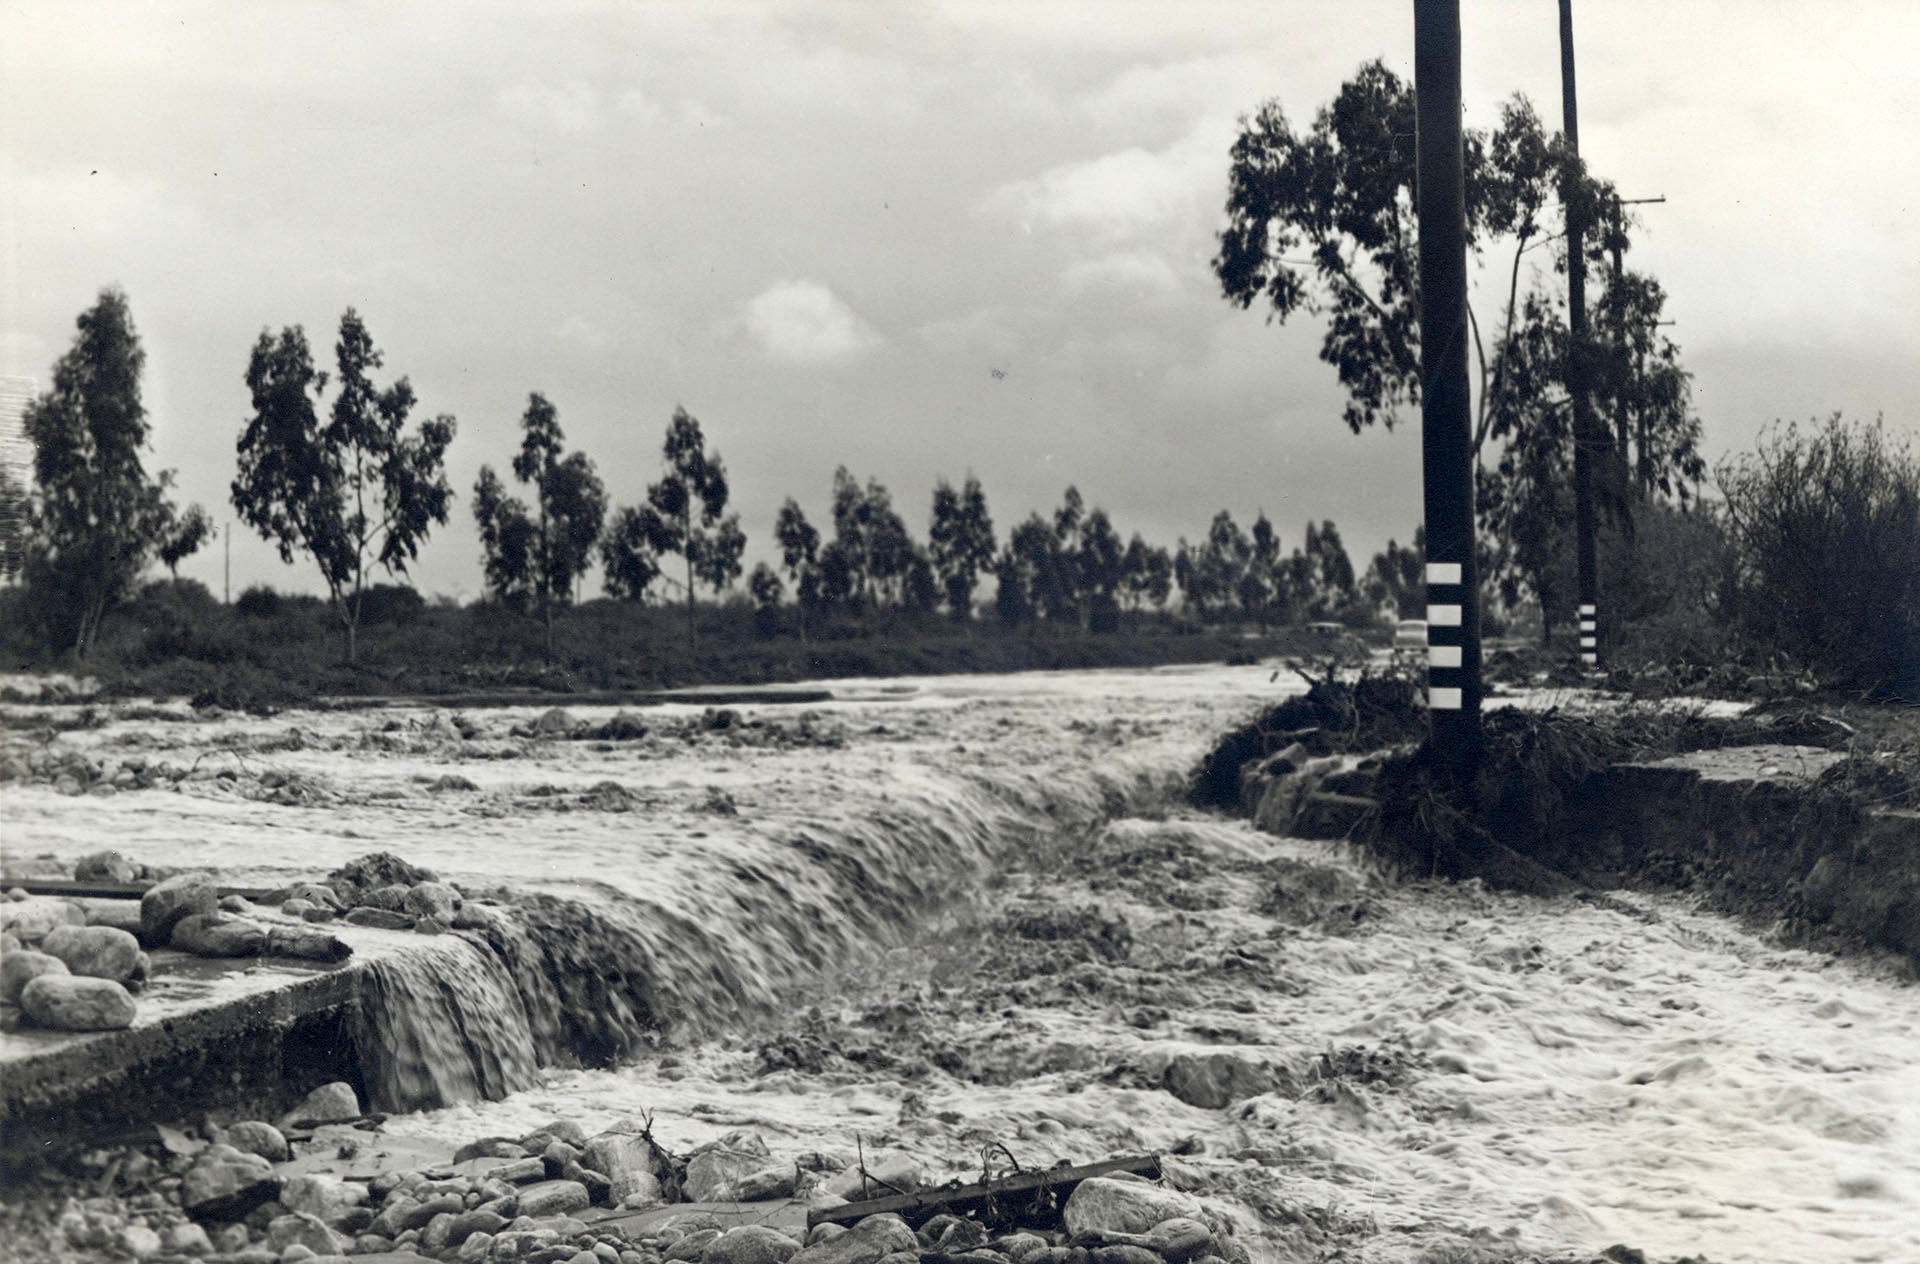 Foothill Blvd. in Claremont, washed out by floodwaters in March 1938